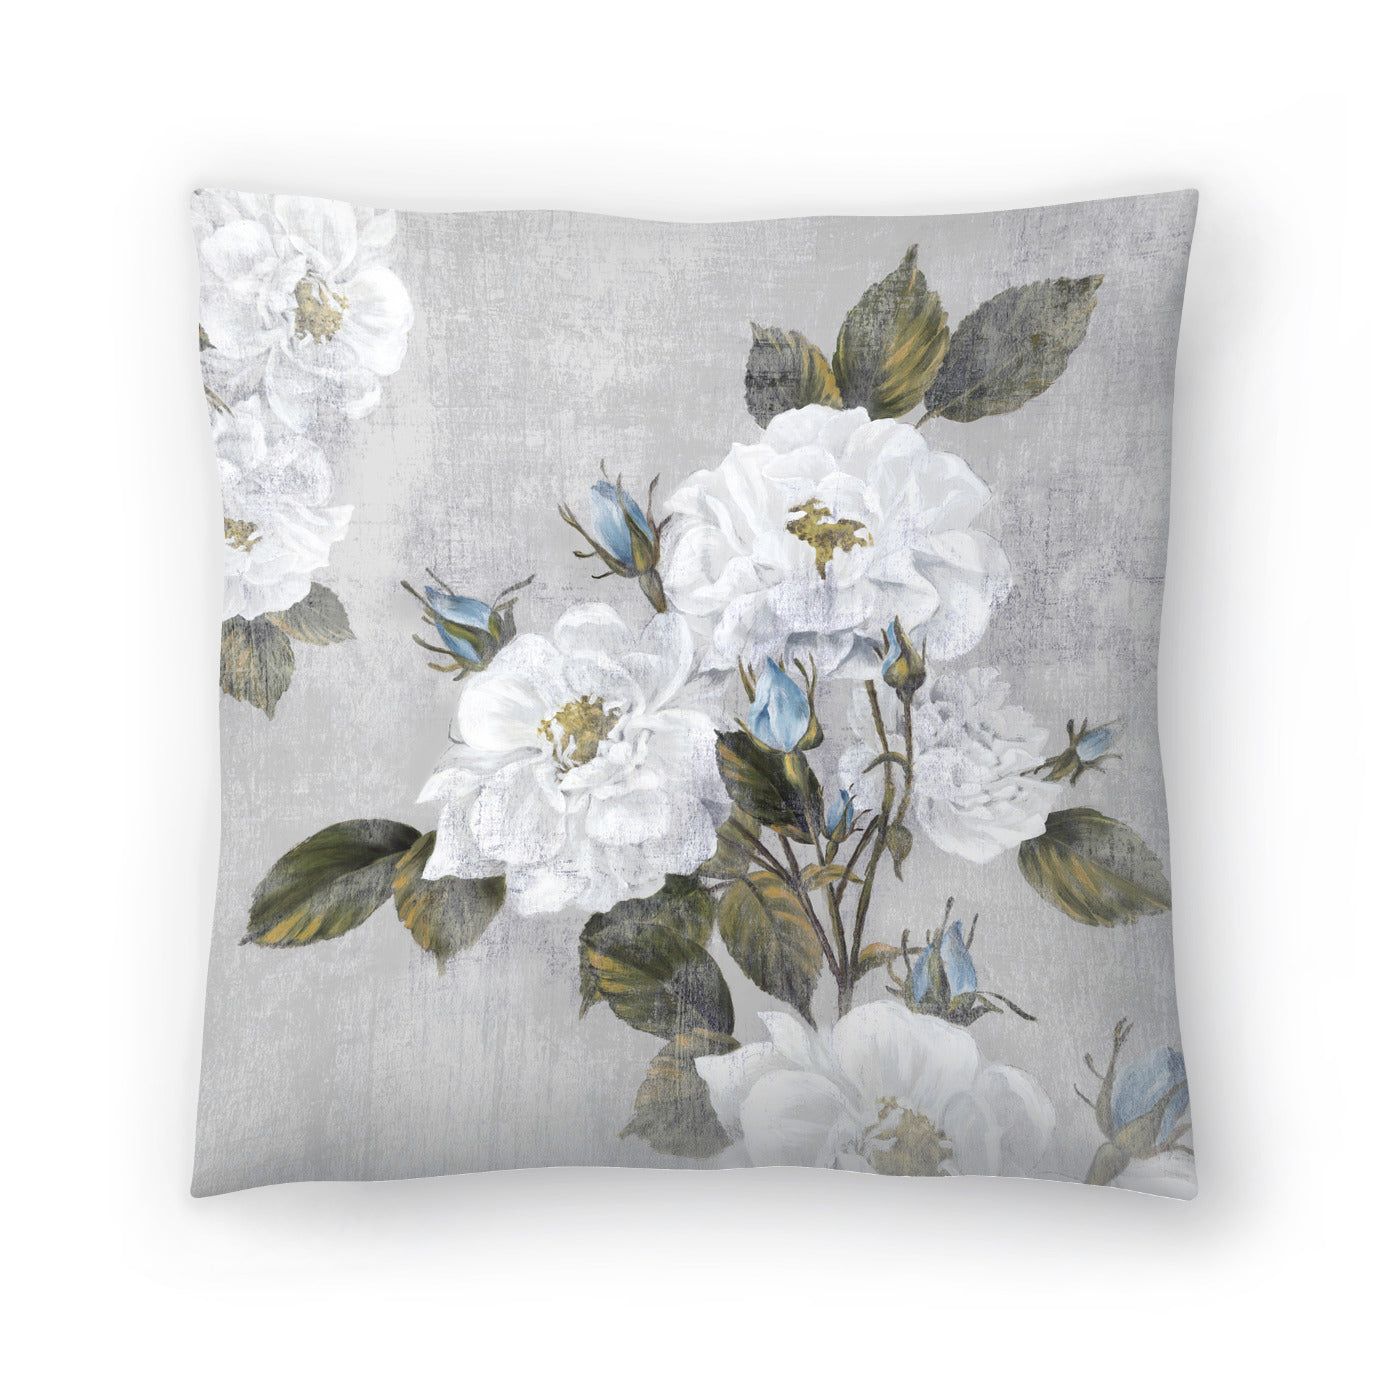 Graceful Iii by PI Creative Art Decorative Pillow - Decorative Pillow - Americanflat